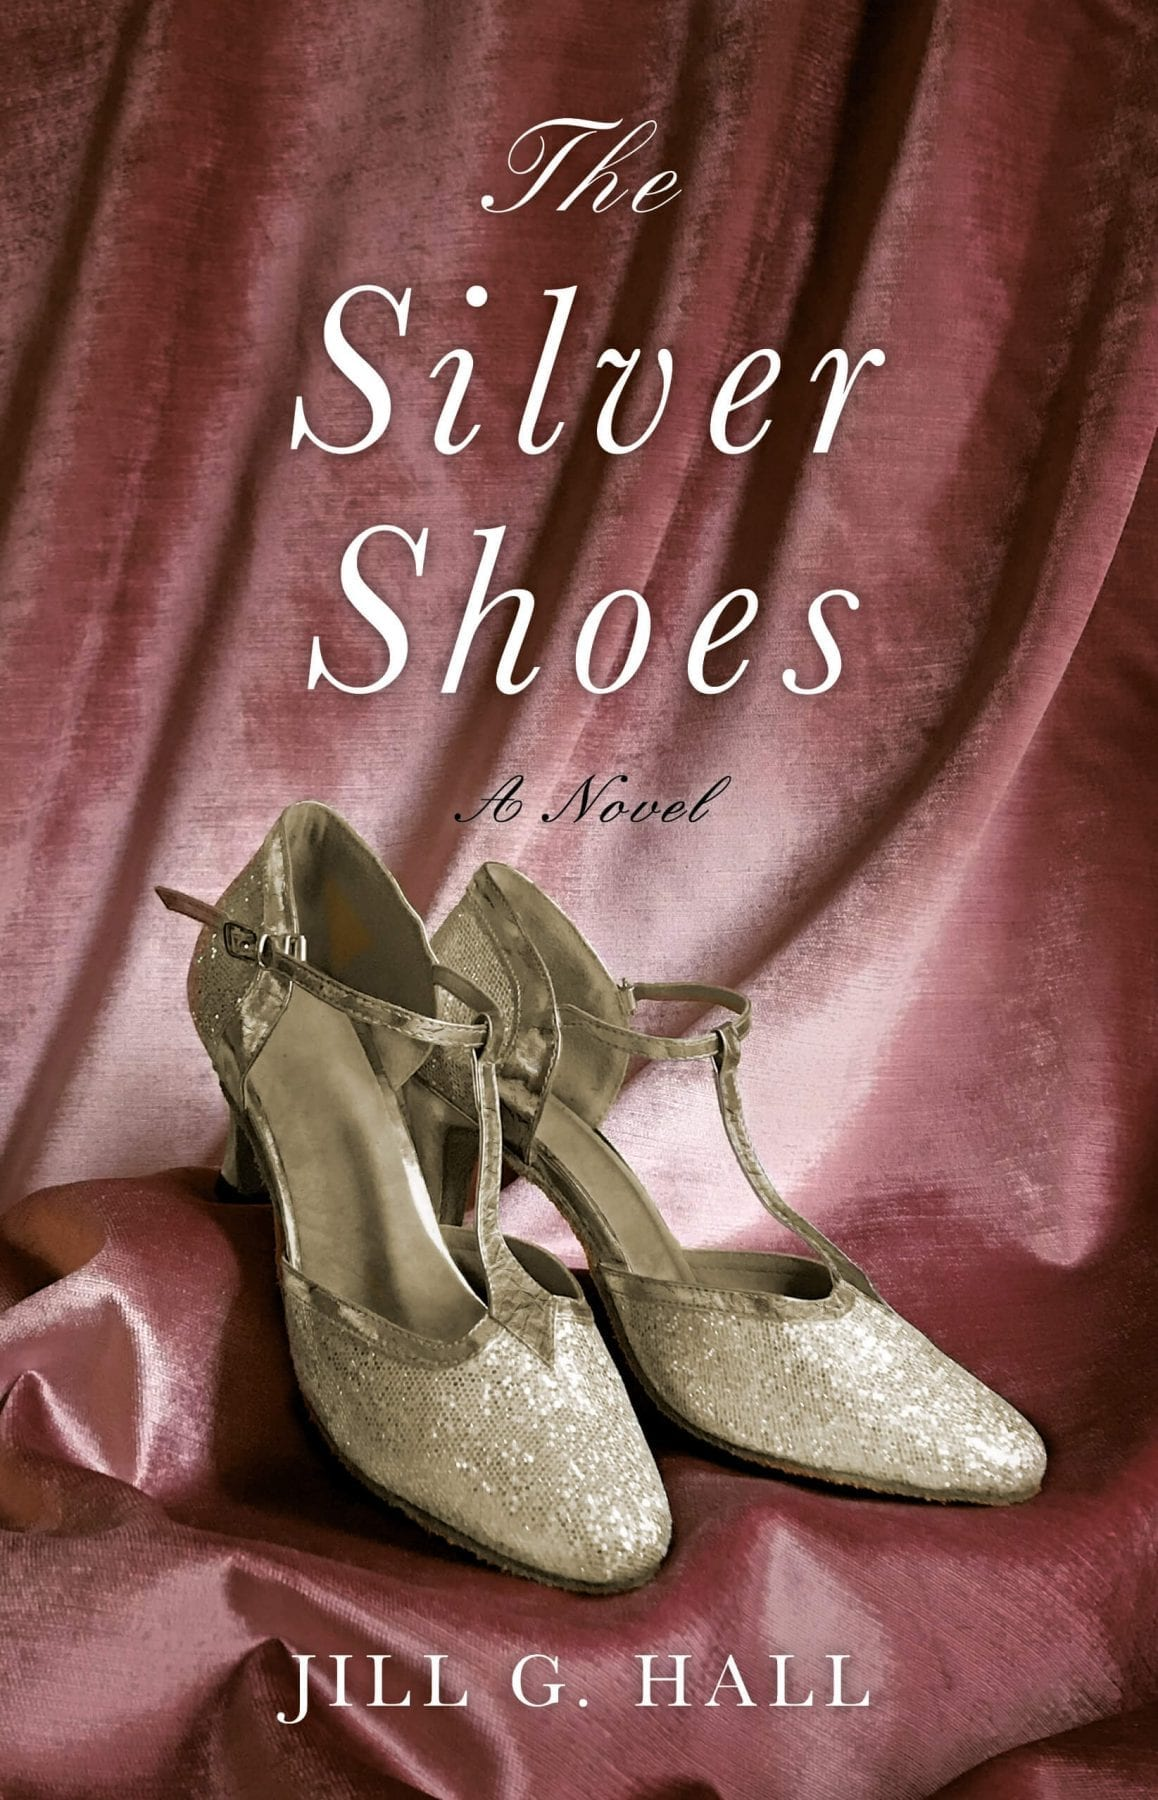 The Silver Shoes by Jill Hall